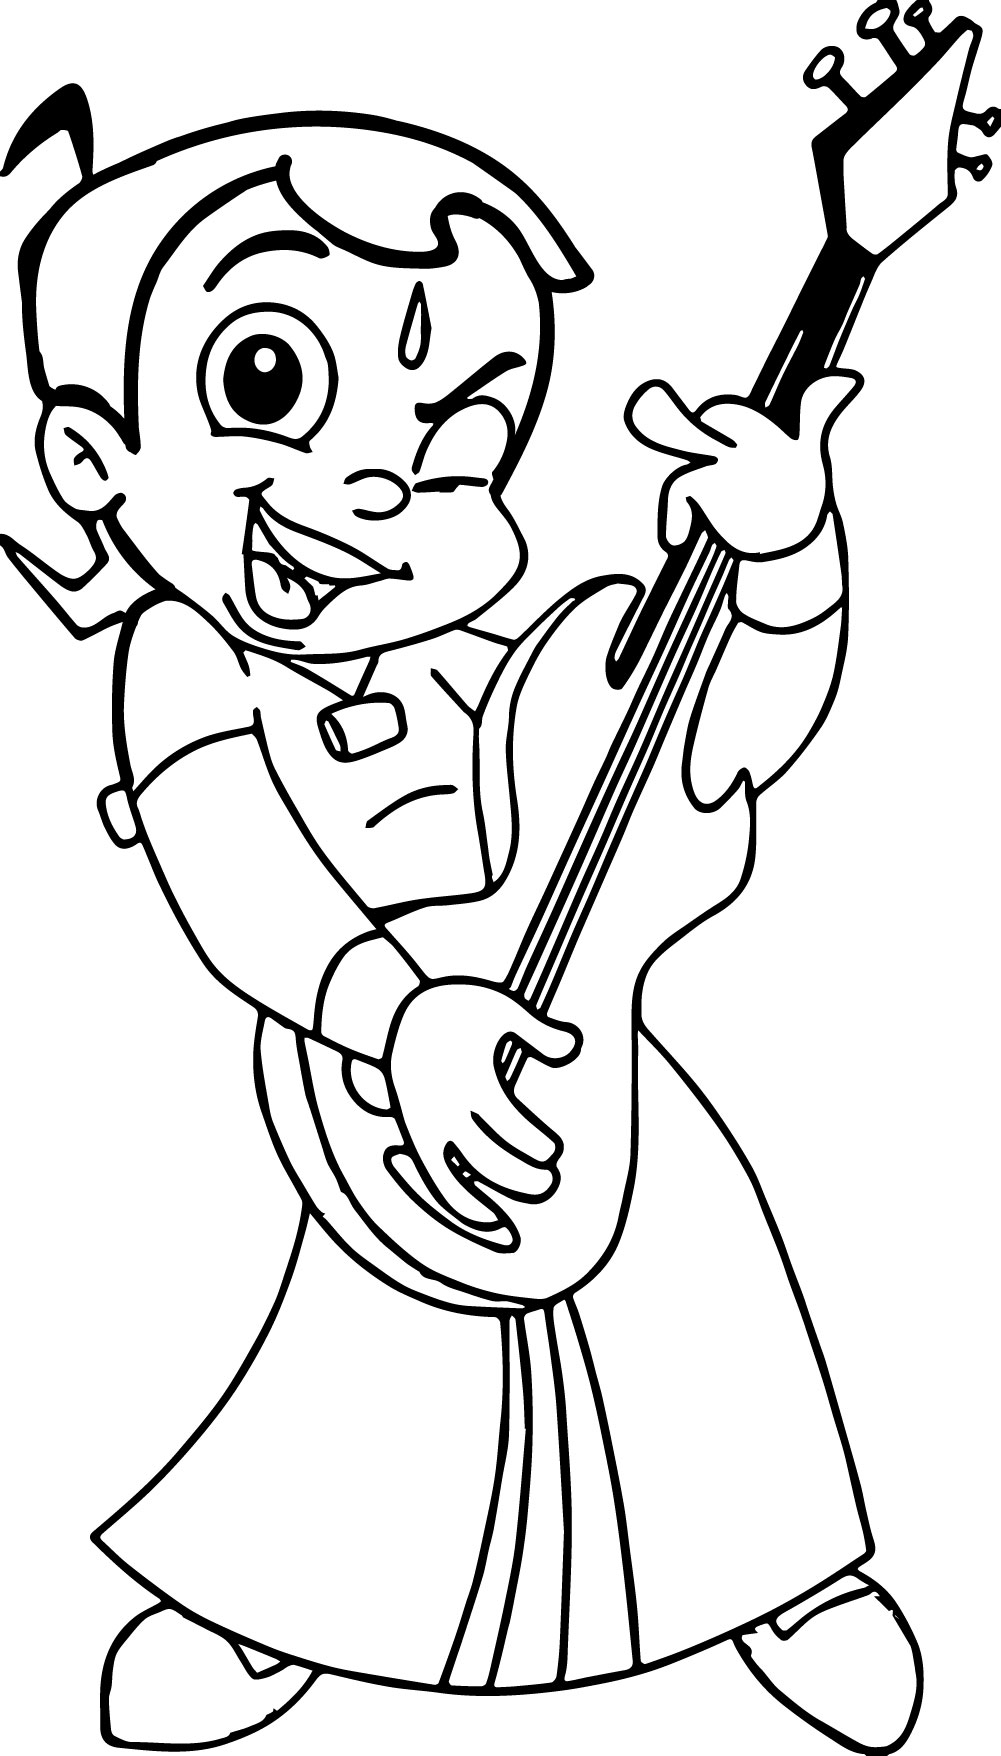 Coloring Pages Chota Bheem Coloring Pages chota bheem coloring pages eassume com eassume